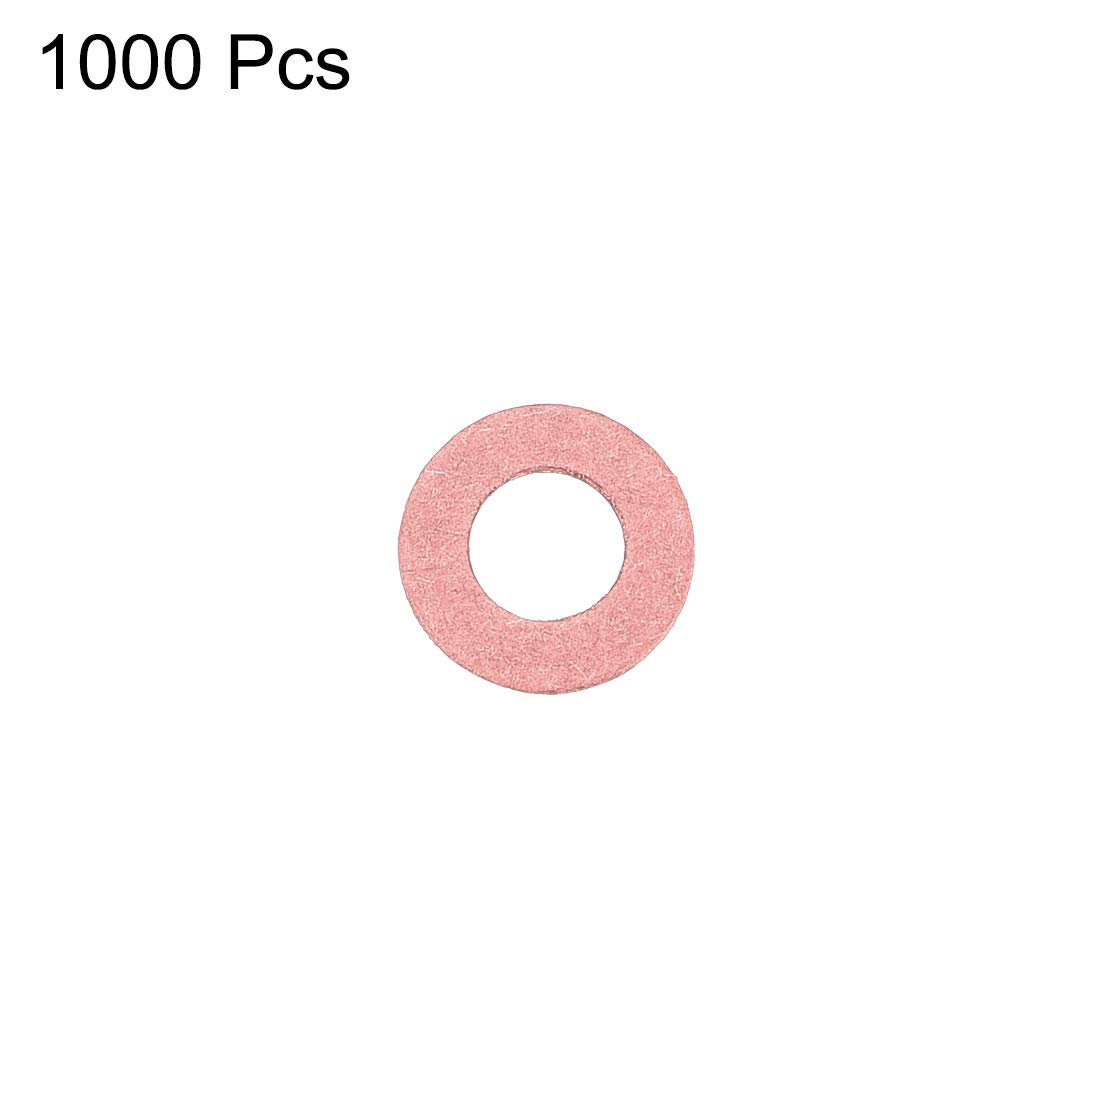 Insulation Gasket for Motherboard 1000Pcs 6mm x 12mm x 0.8mm Red Vulcanized Fiber Washer uxcell Insulating Washer